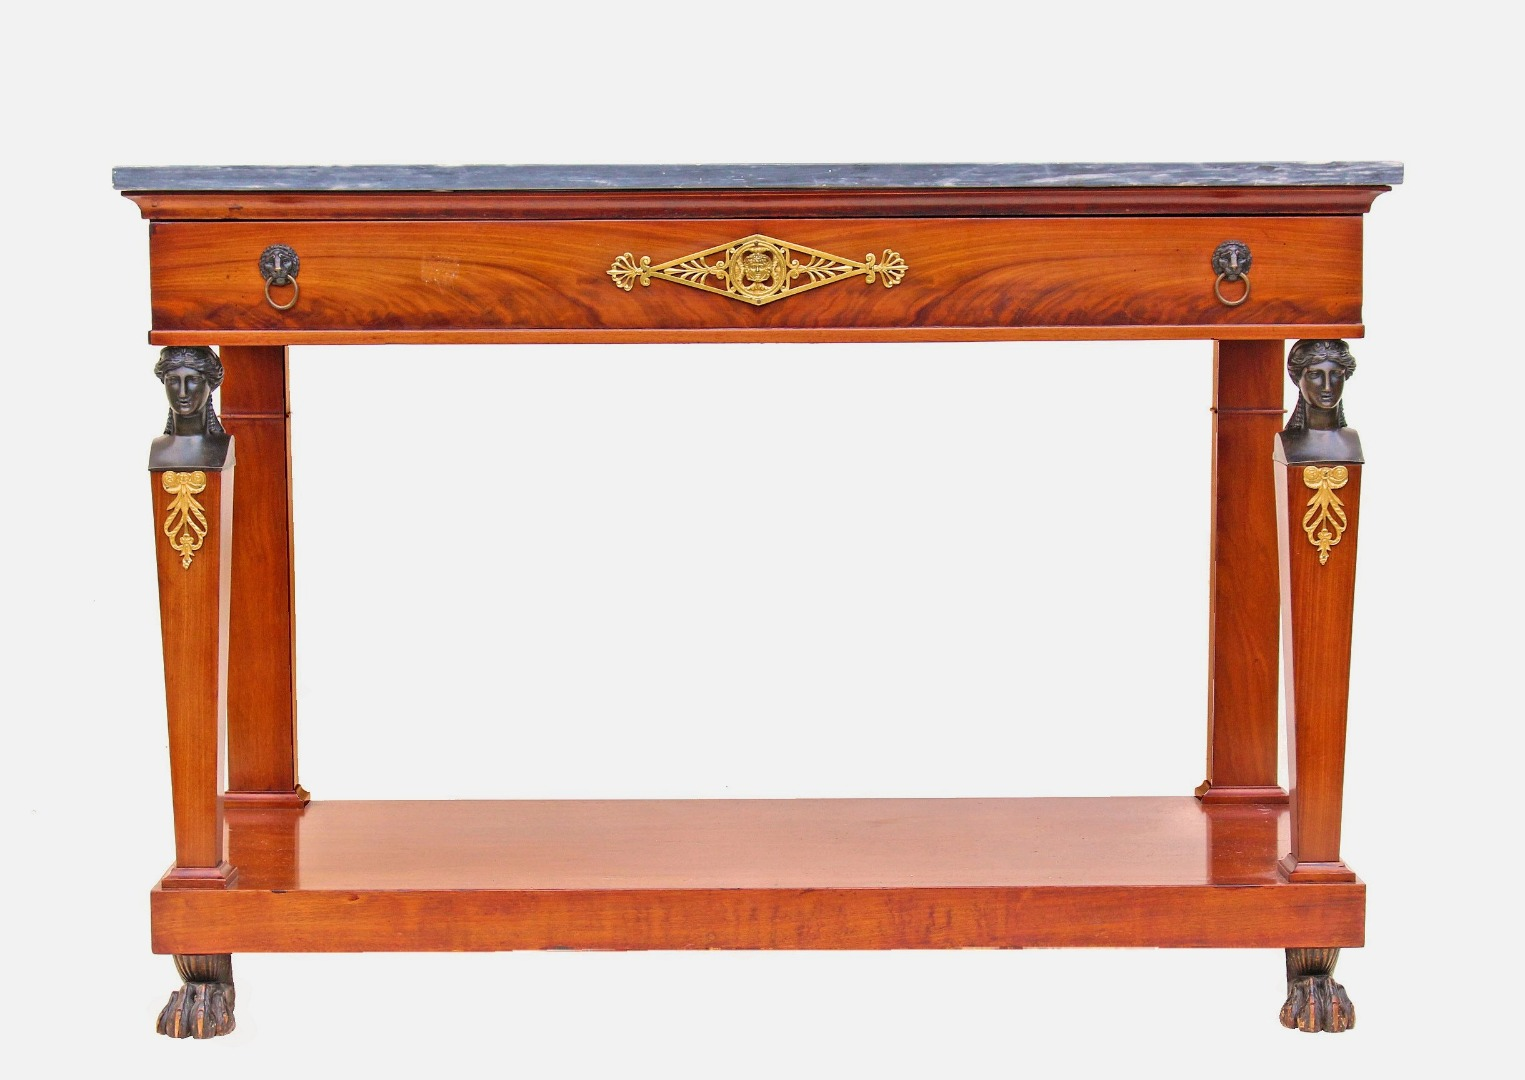 18th CENTURY CONSOLE TABLE attributed to Molitor